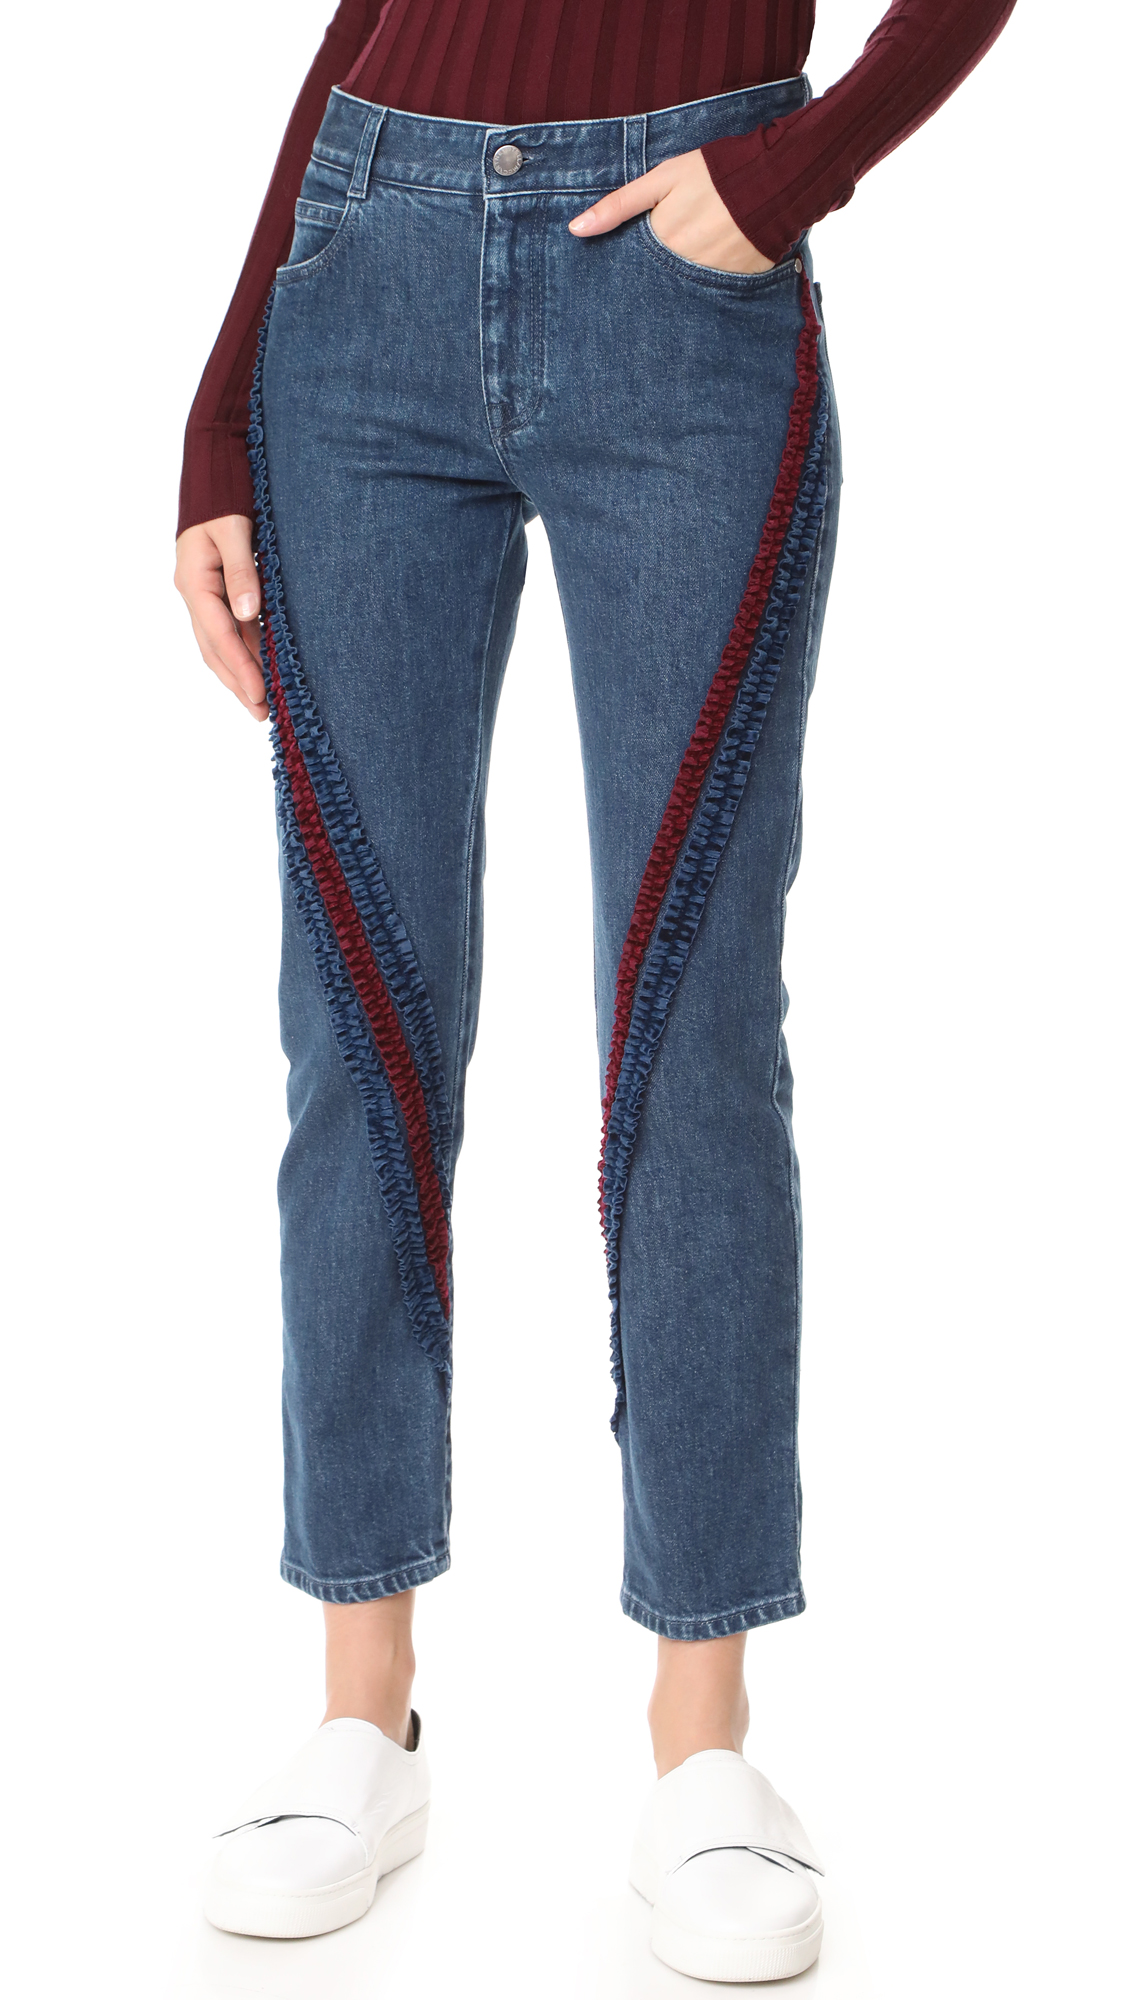 Stella McCartney The Boyfriend Velvet Ribbon Detail Jeans - Midnight